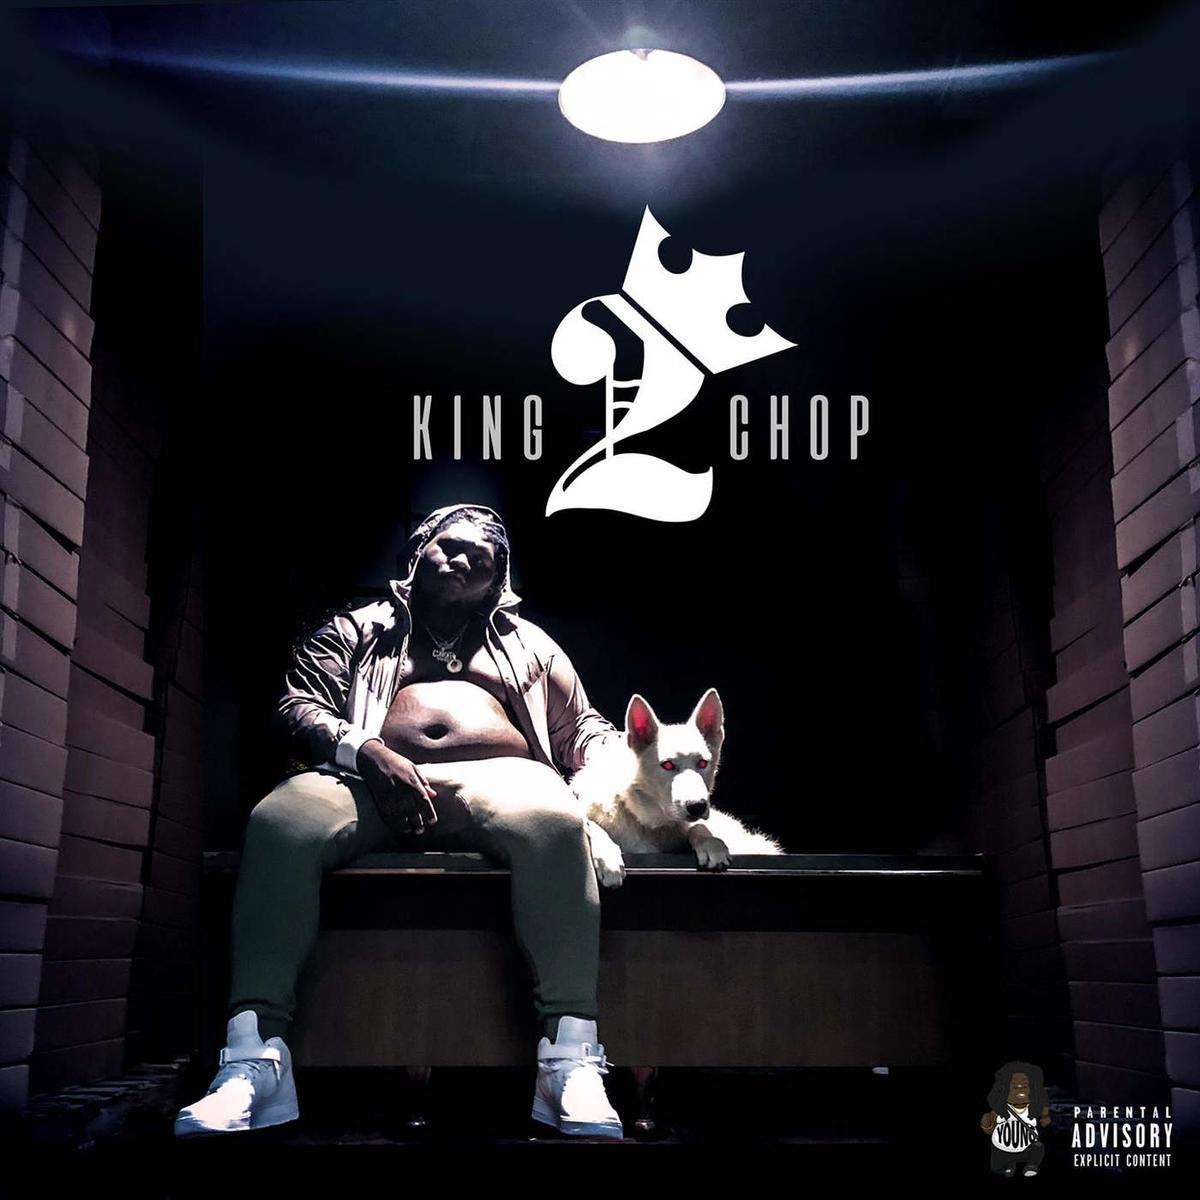 Young Chop - King Chop 2 Album Download